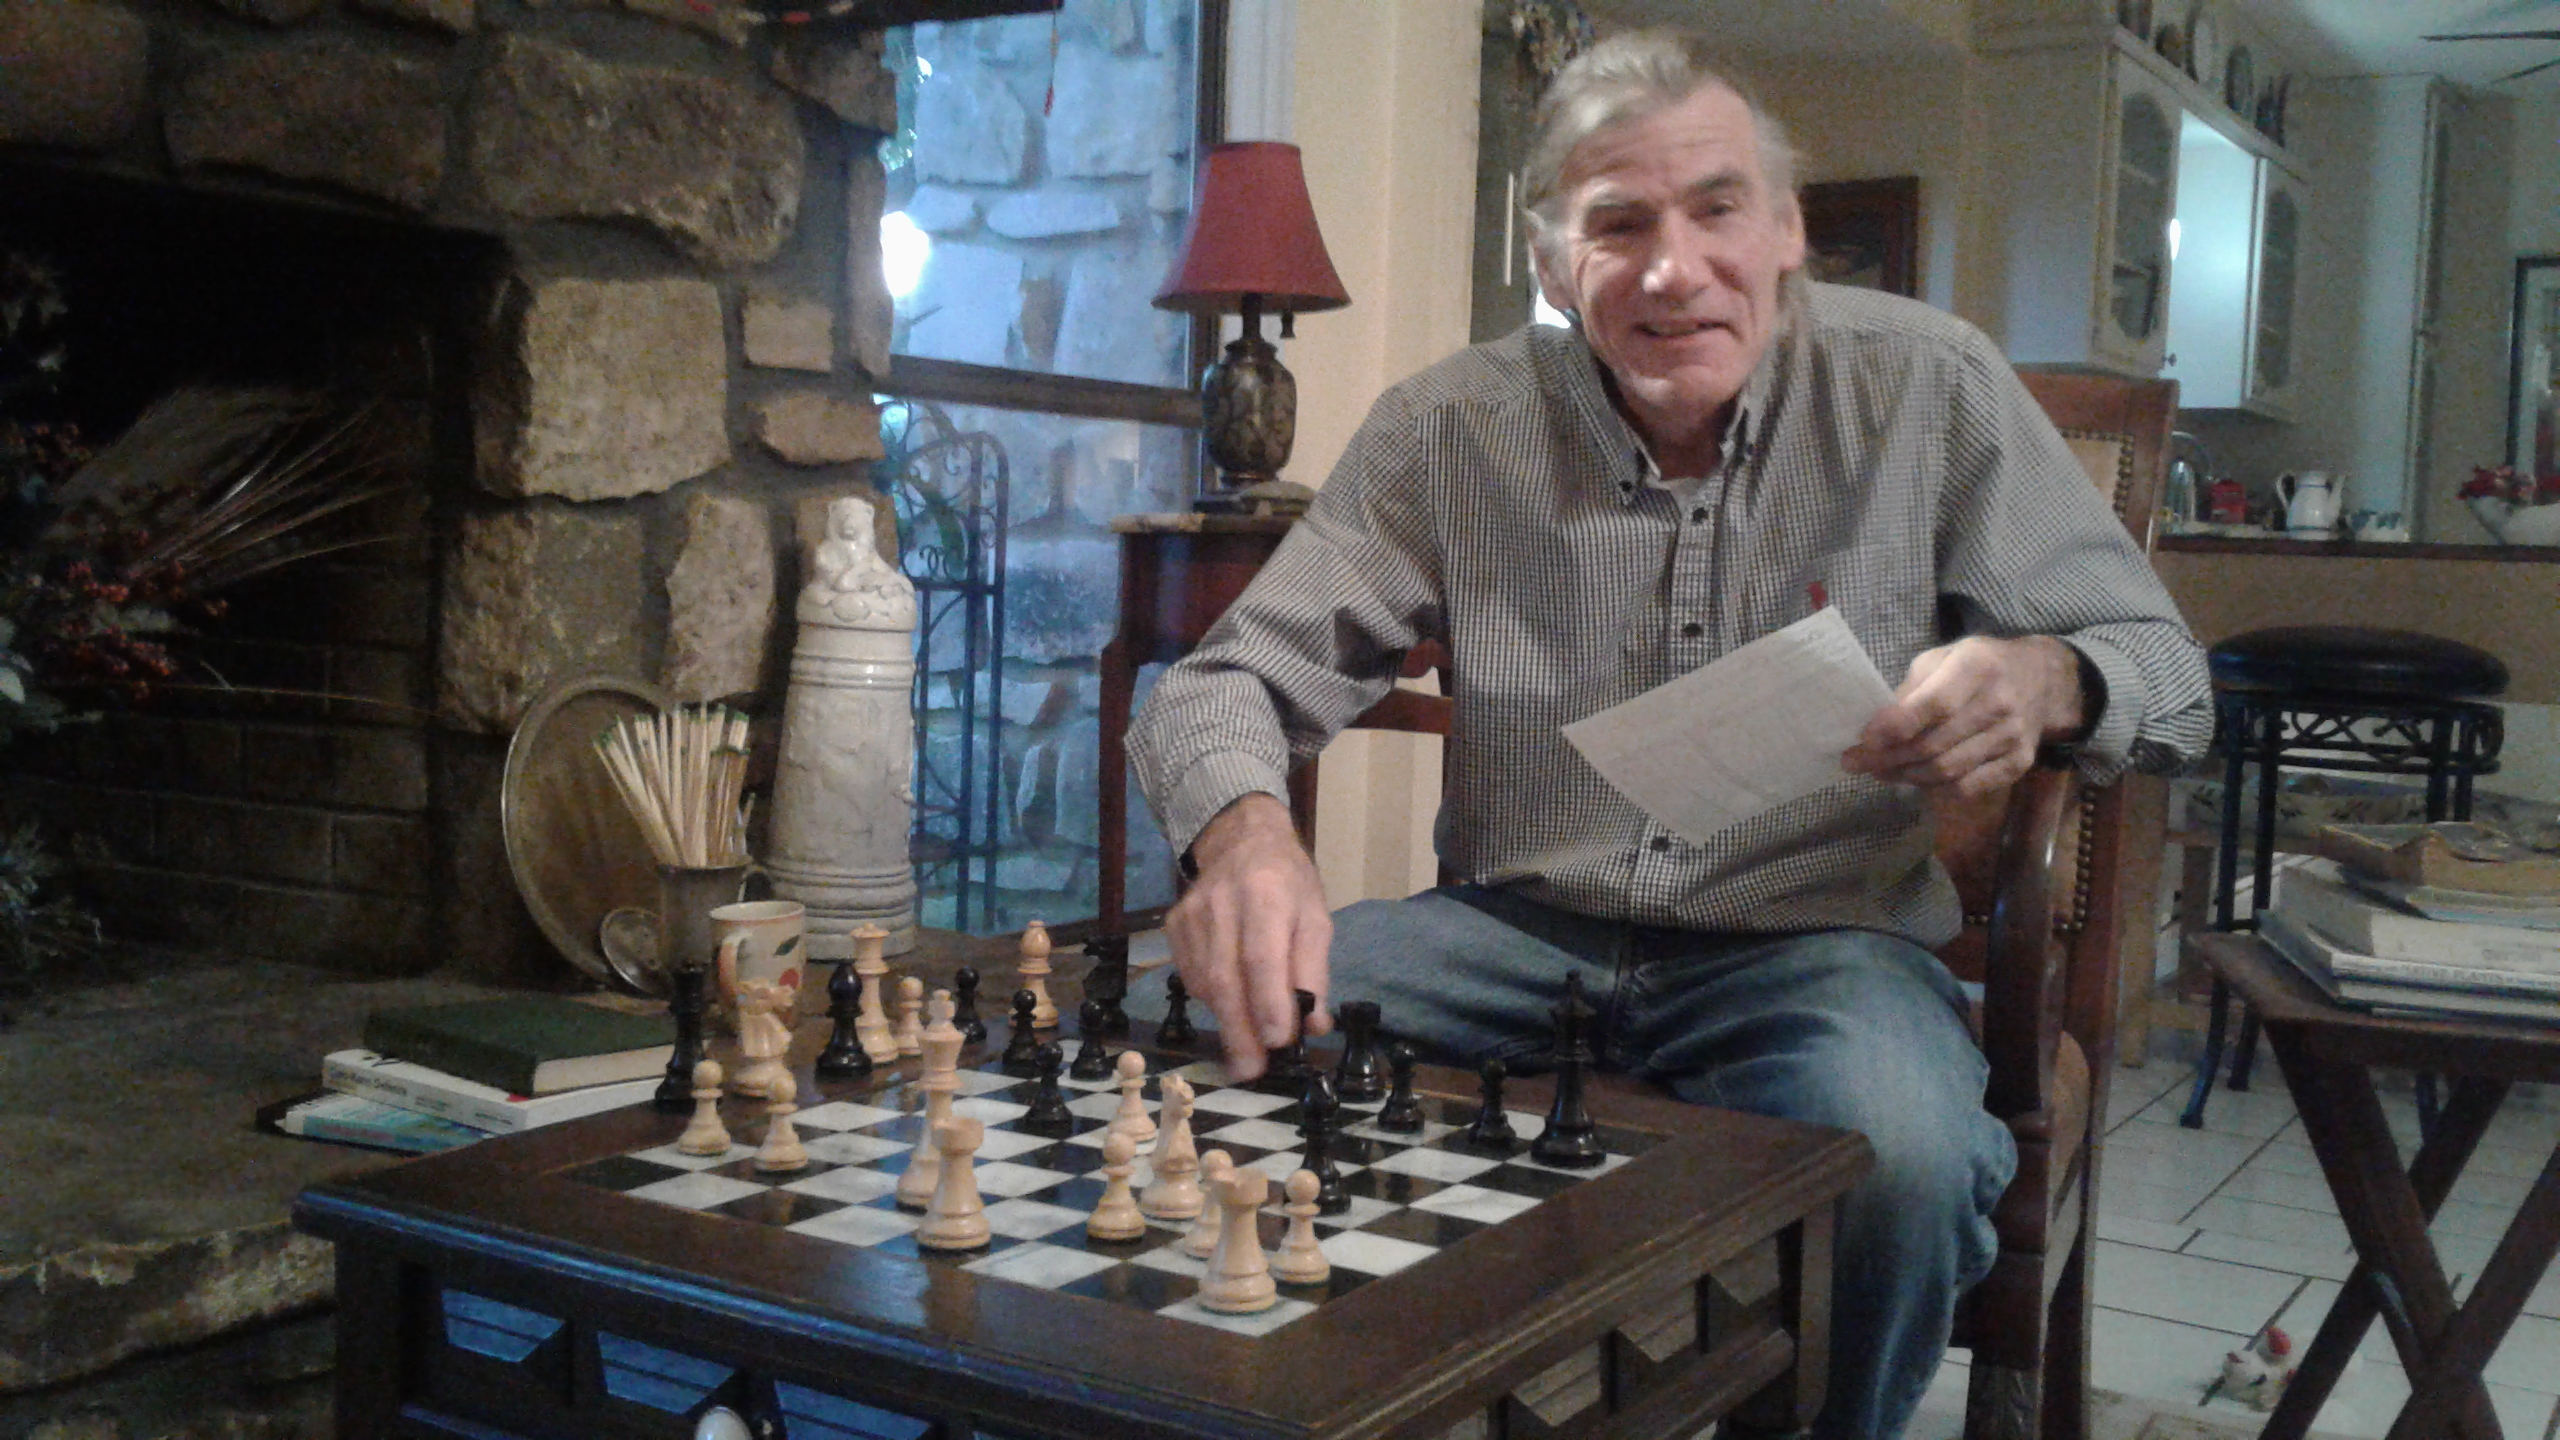 RUSS HEISE IS RANKED IN THE 93RD PERCENTILE OF ALL TEXAS CHESS PLAYERS - PHOTO BY CAROL HEISE